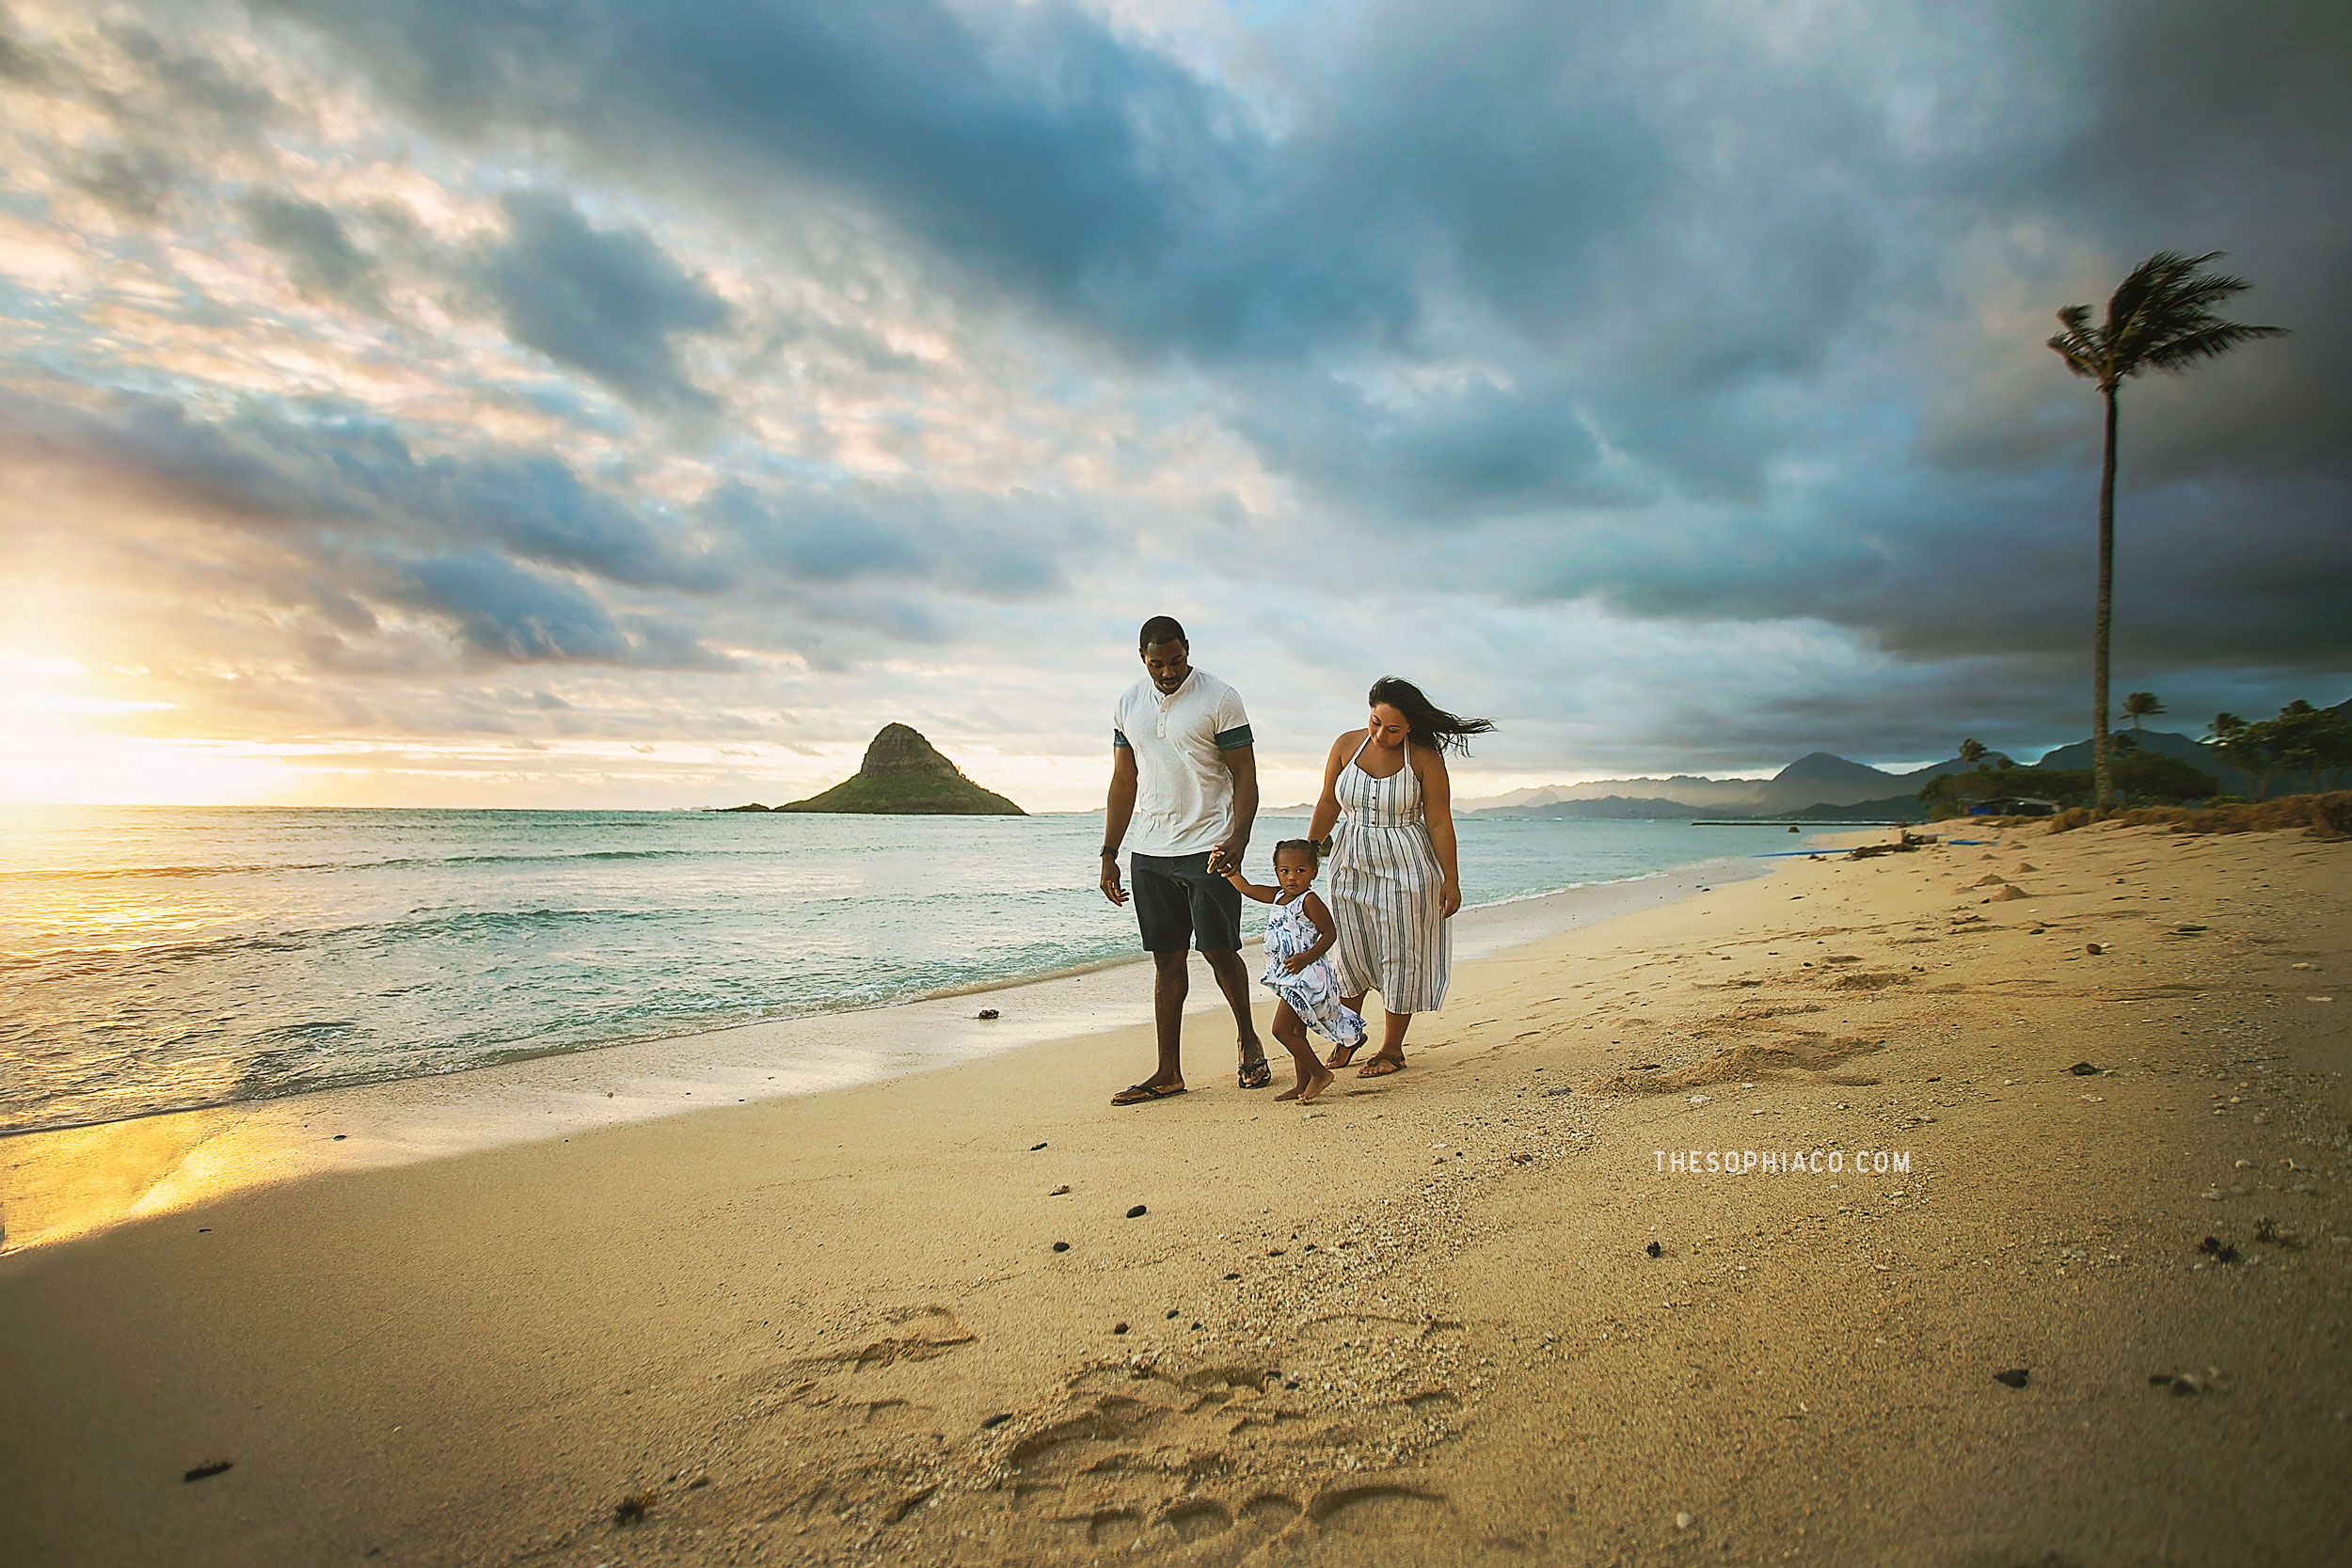 oahu-sunrise-family-photography-07.jpg